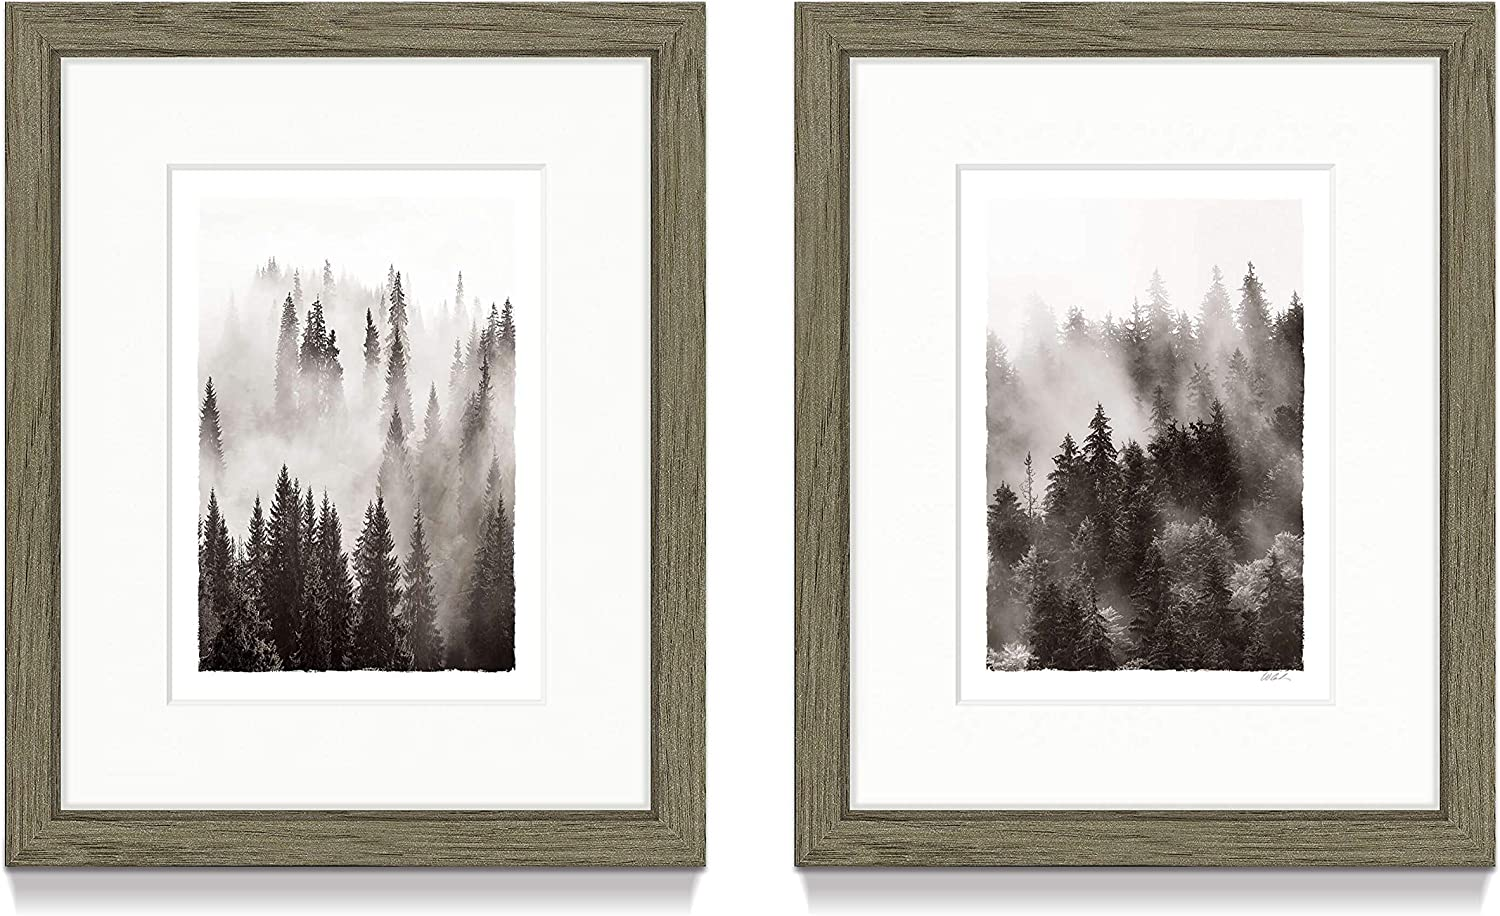 Framed Foggy Forest Wall Art - Misty Pine Tree in Scenic Landscape Pictures Prints Decor for Living Room ( 8'' x 10'' x 2 Panels )